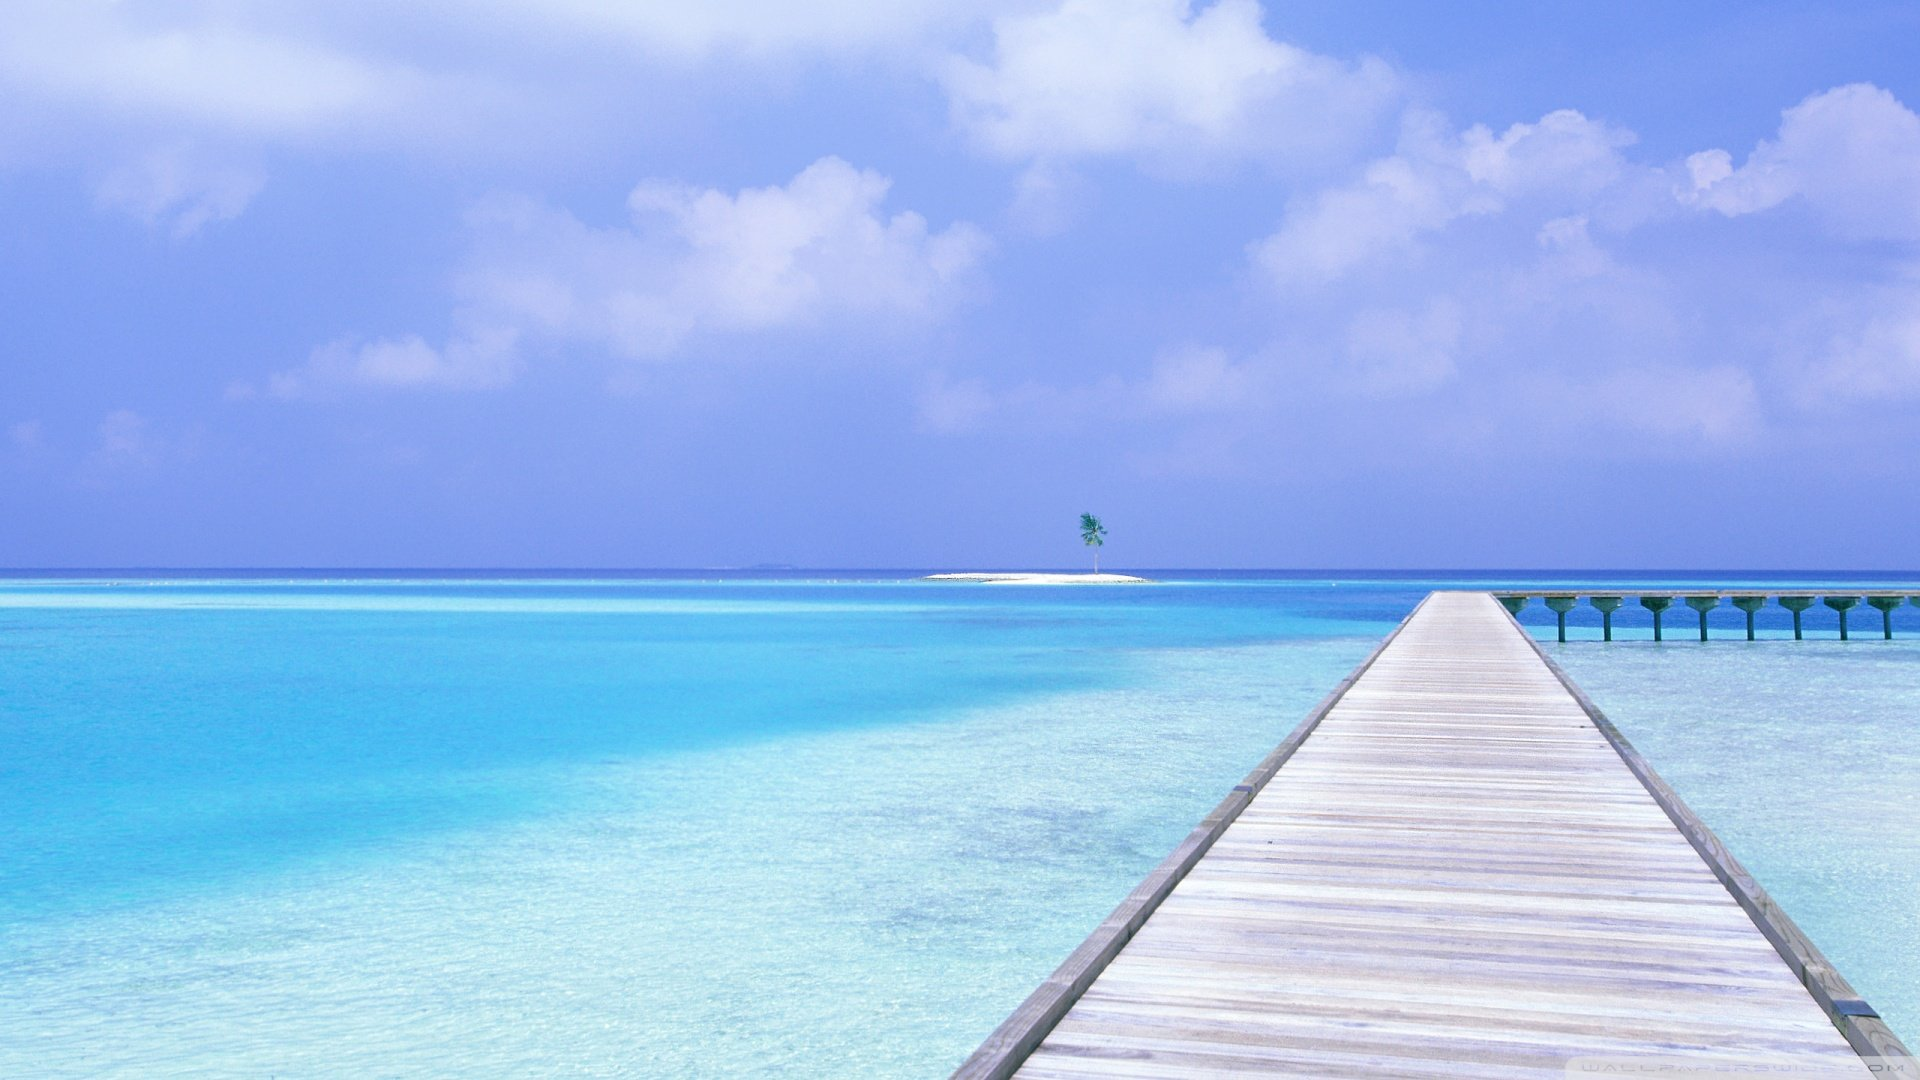 Download Footbridge Over Blue Ocean Wallpaper 1920x1080 1920x1080